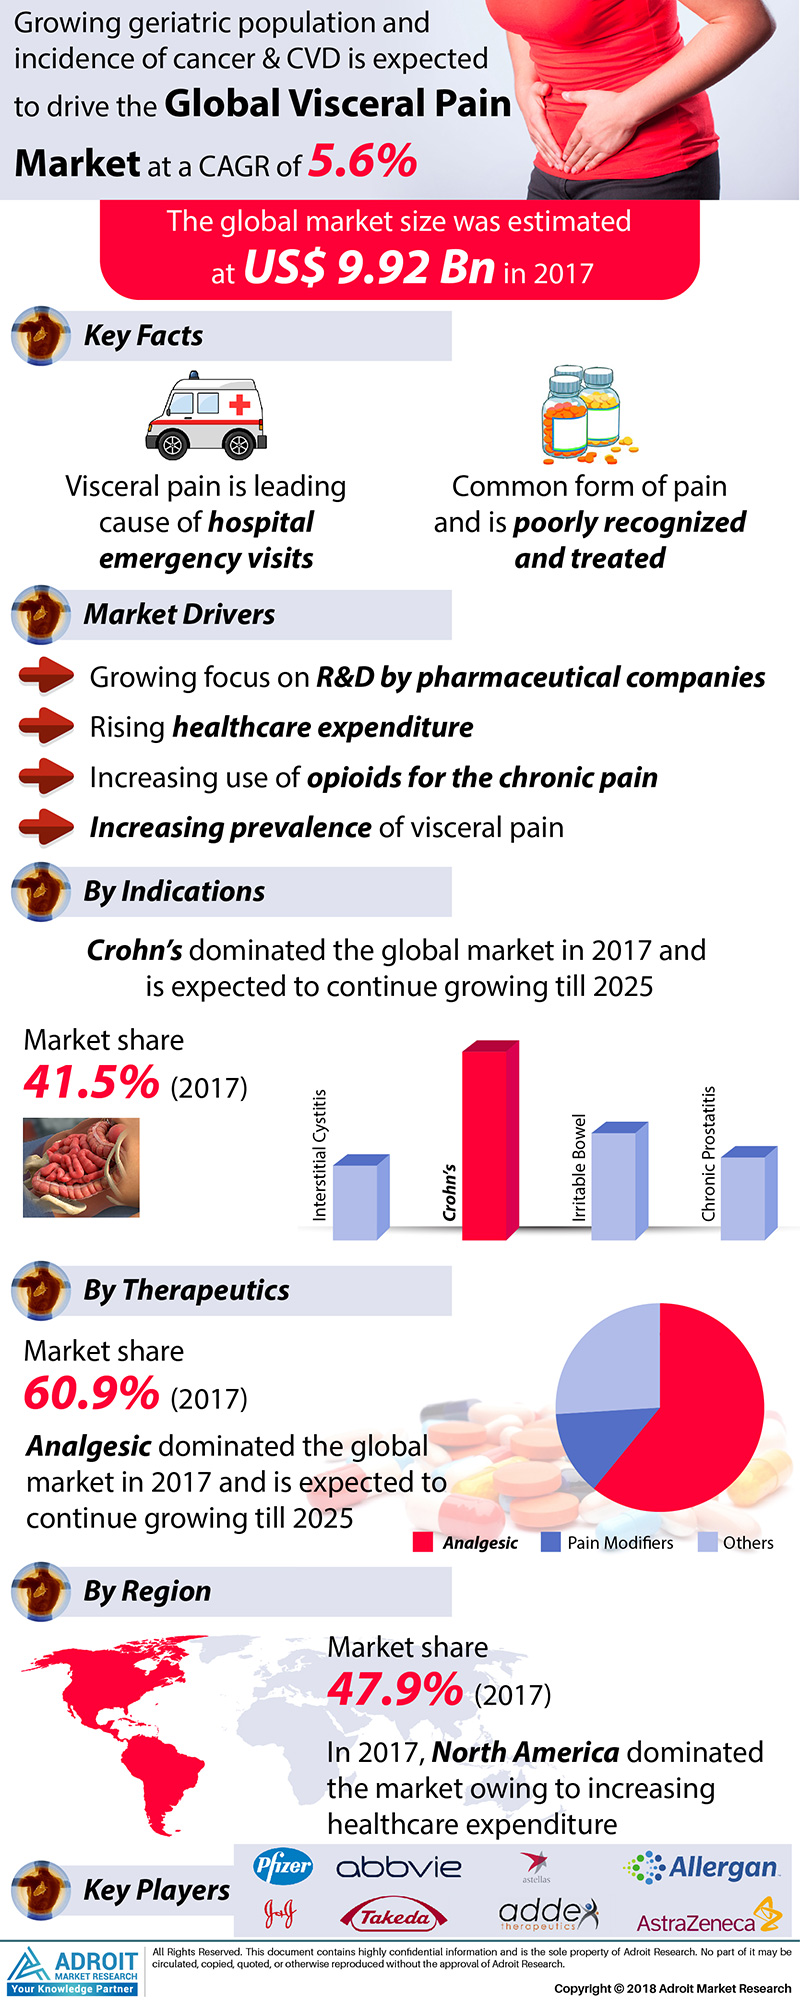 Global Visceral Pain Market Size 2017 By Therapeutics, Indications, Region and Forecast 2018 to 2025